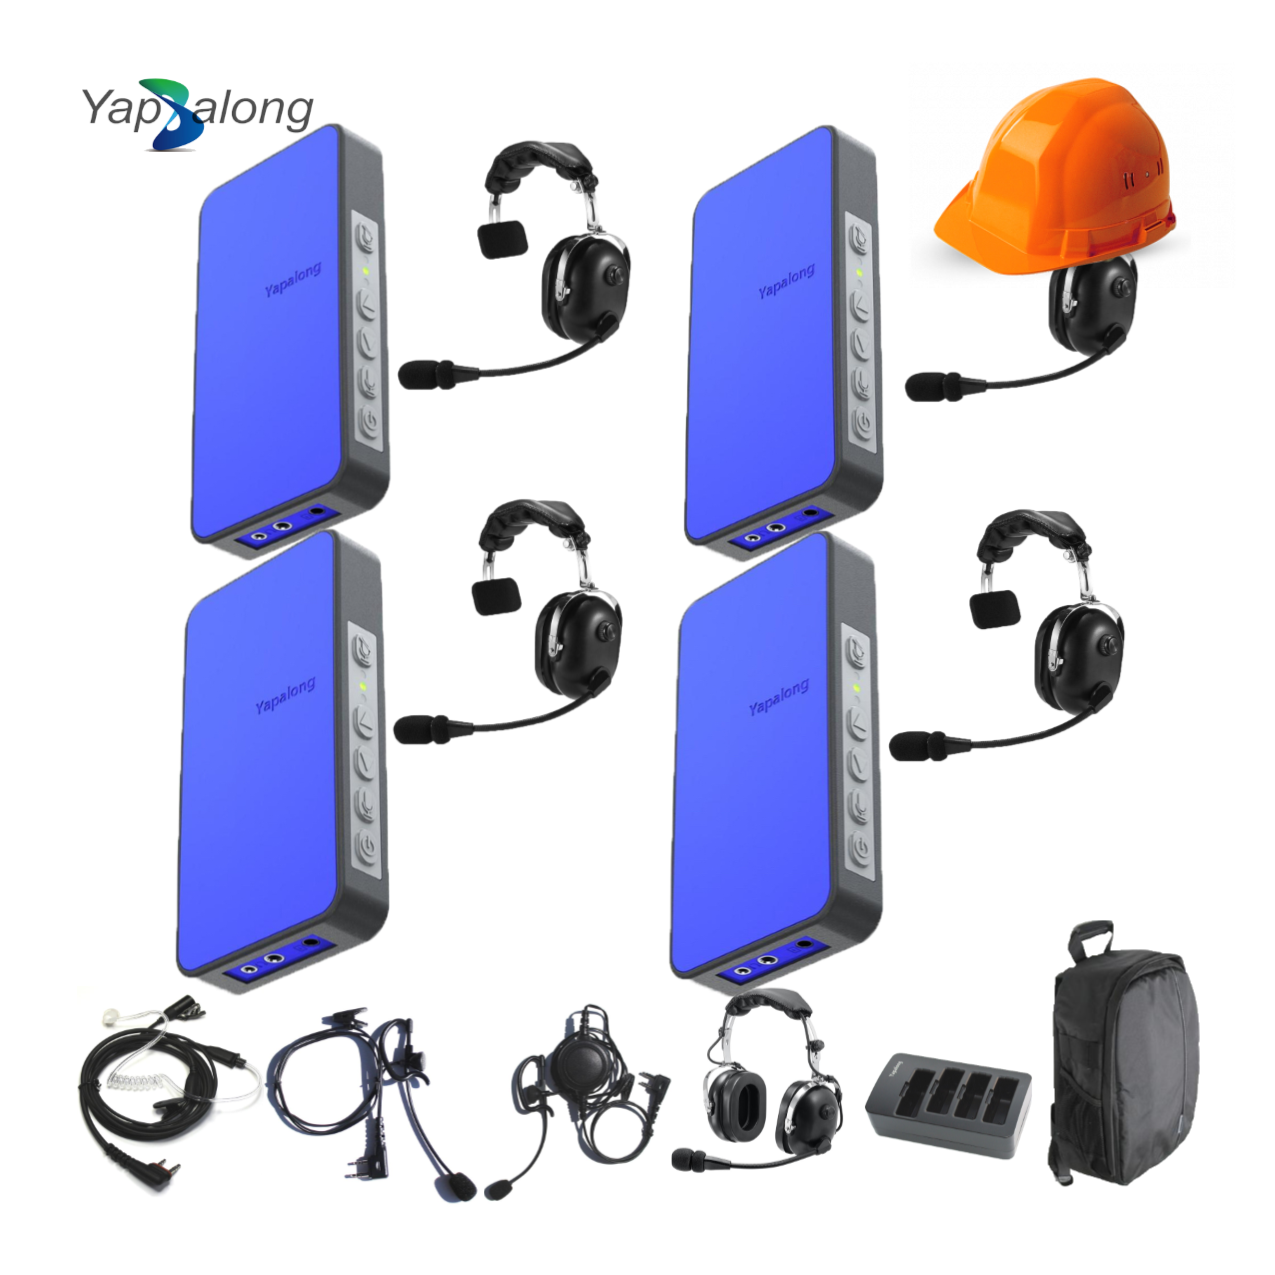 Yapalong 5000 (4-User) Industriale Complete Set Communications & IFB Intercom Systems